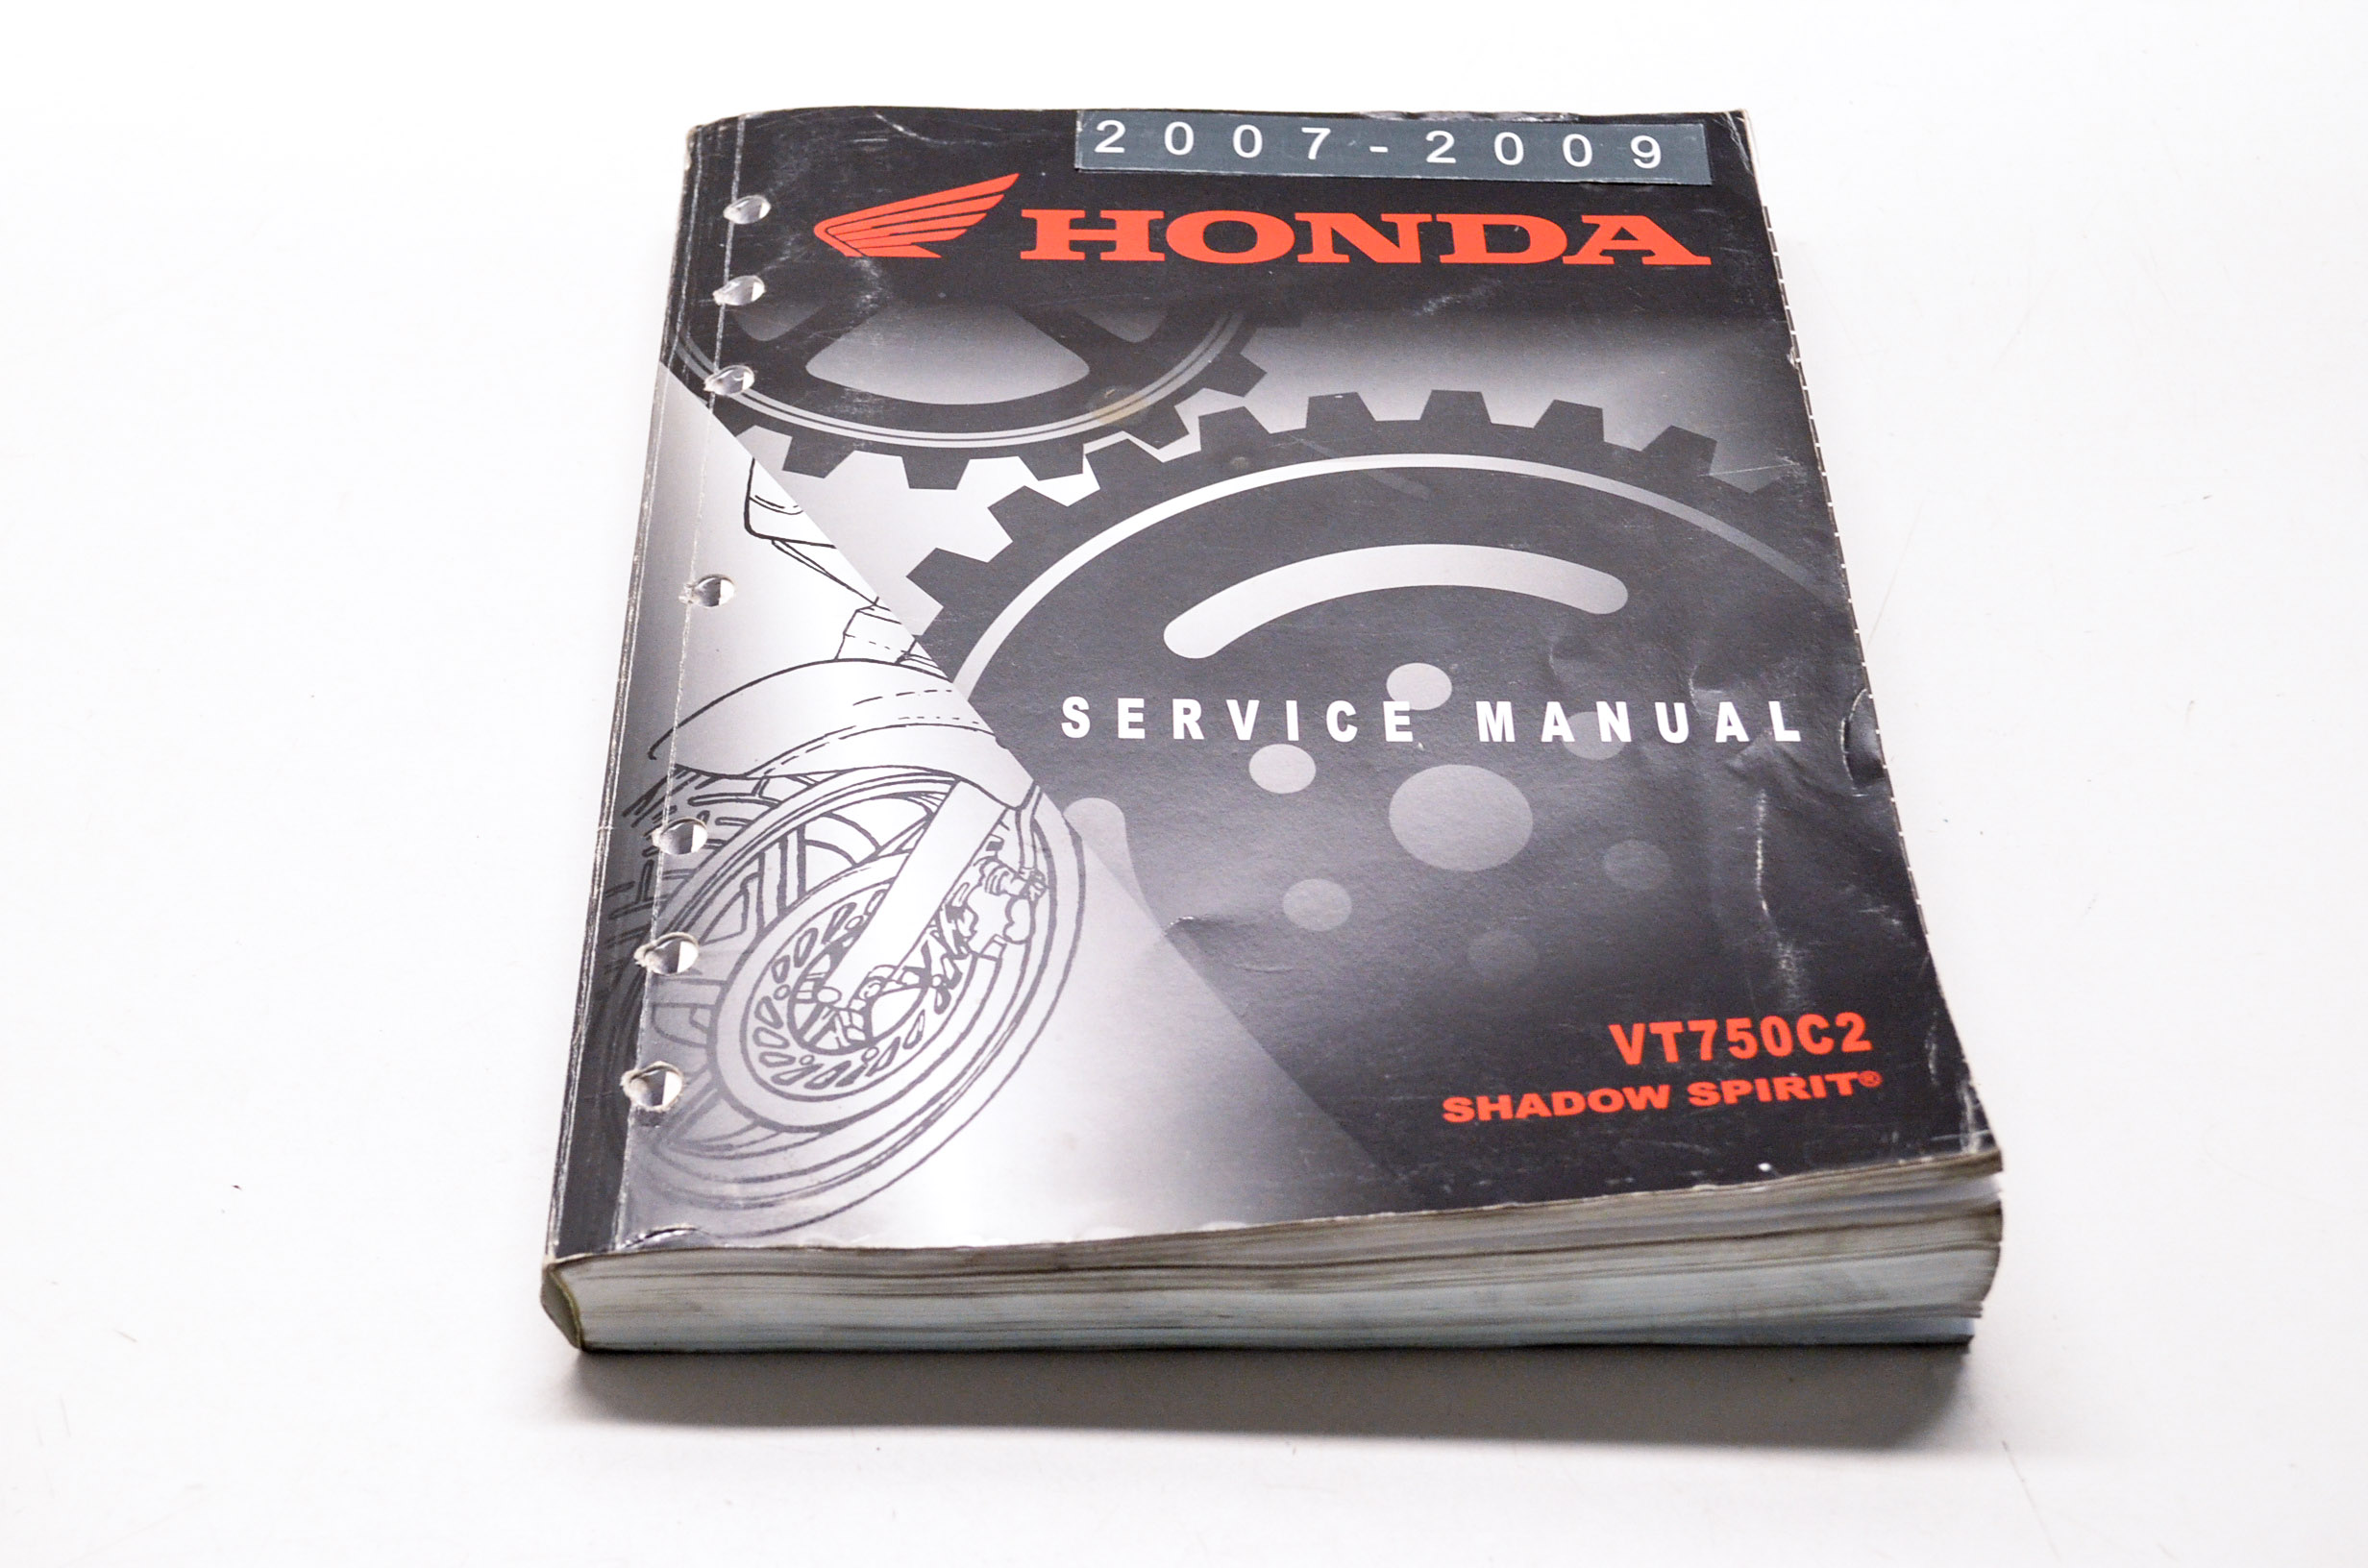 Honda 61MFE02 Service Shop Manual 2007-2009 VT750C2 Shadow Spirit QTY 1 -  Walmart.com